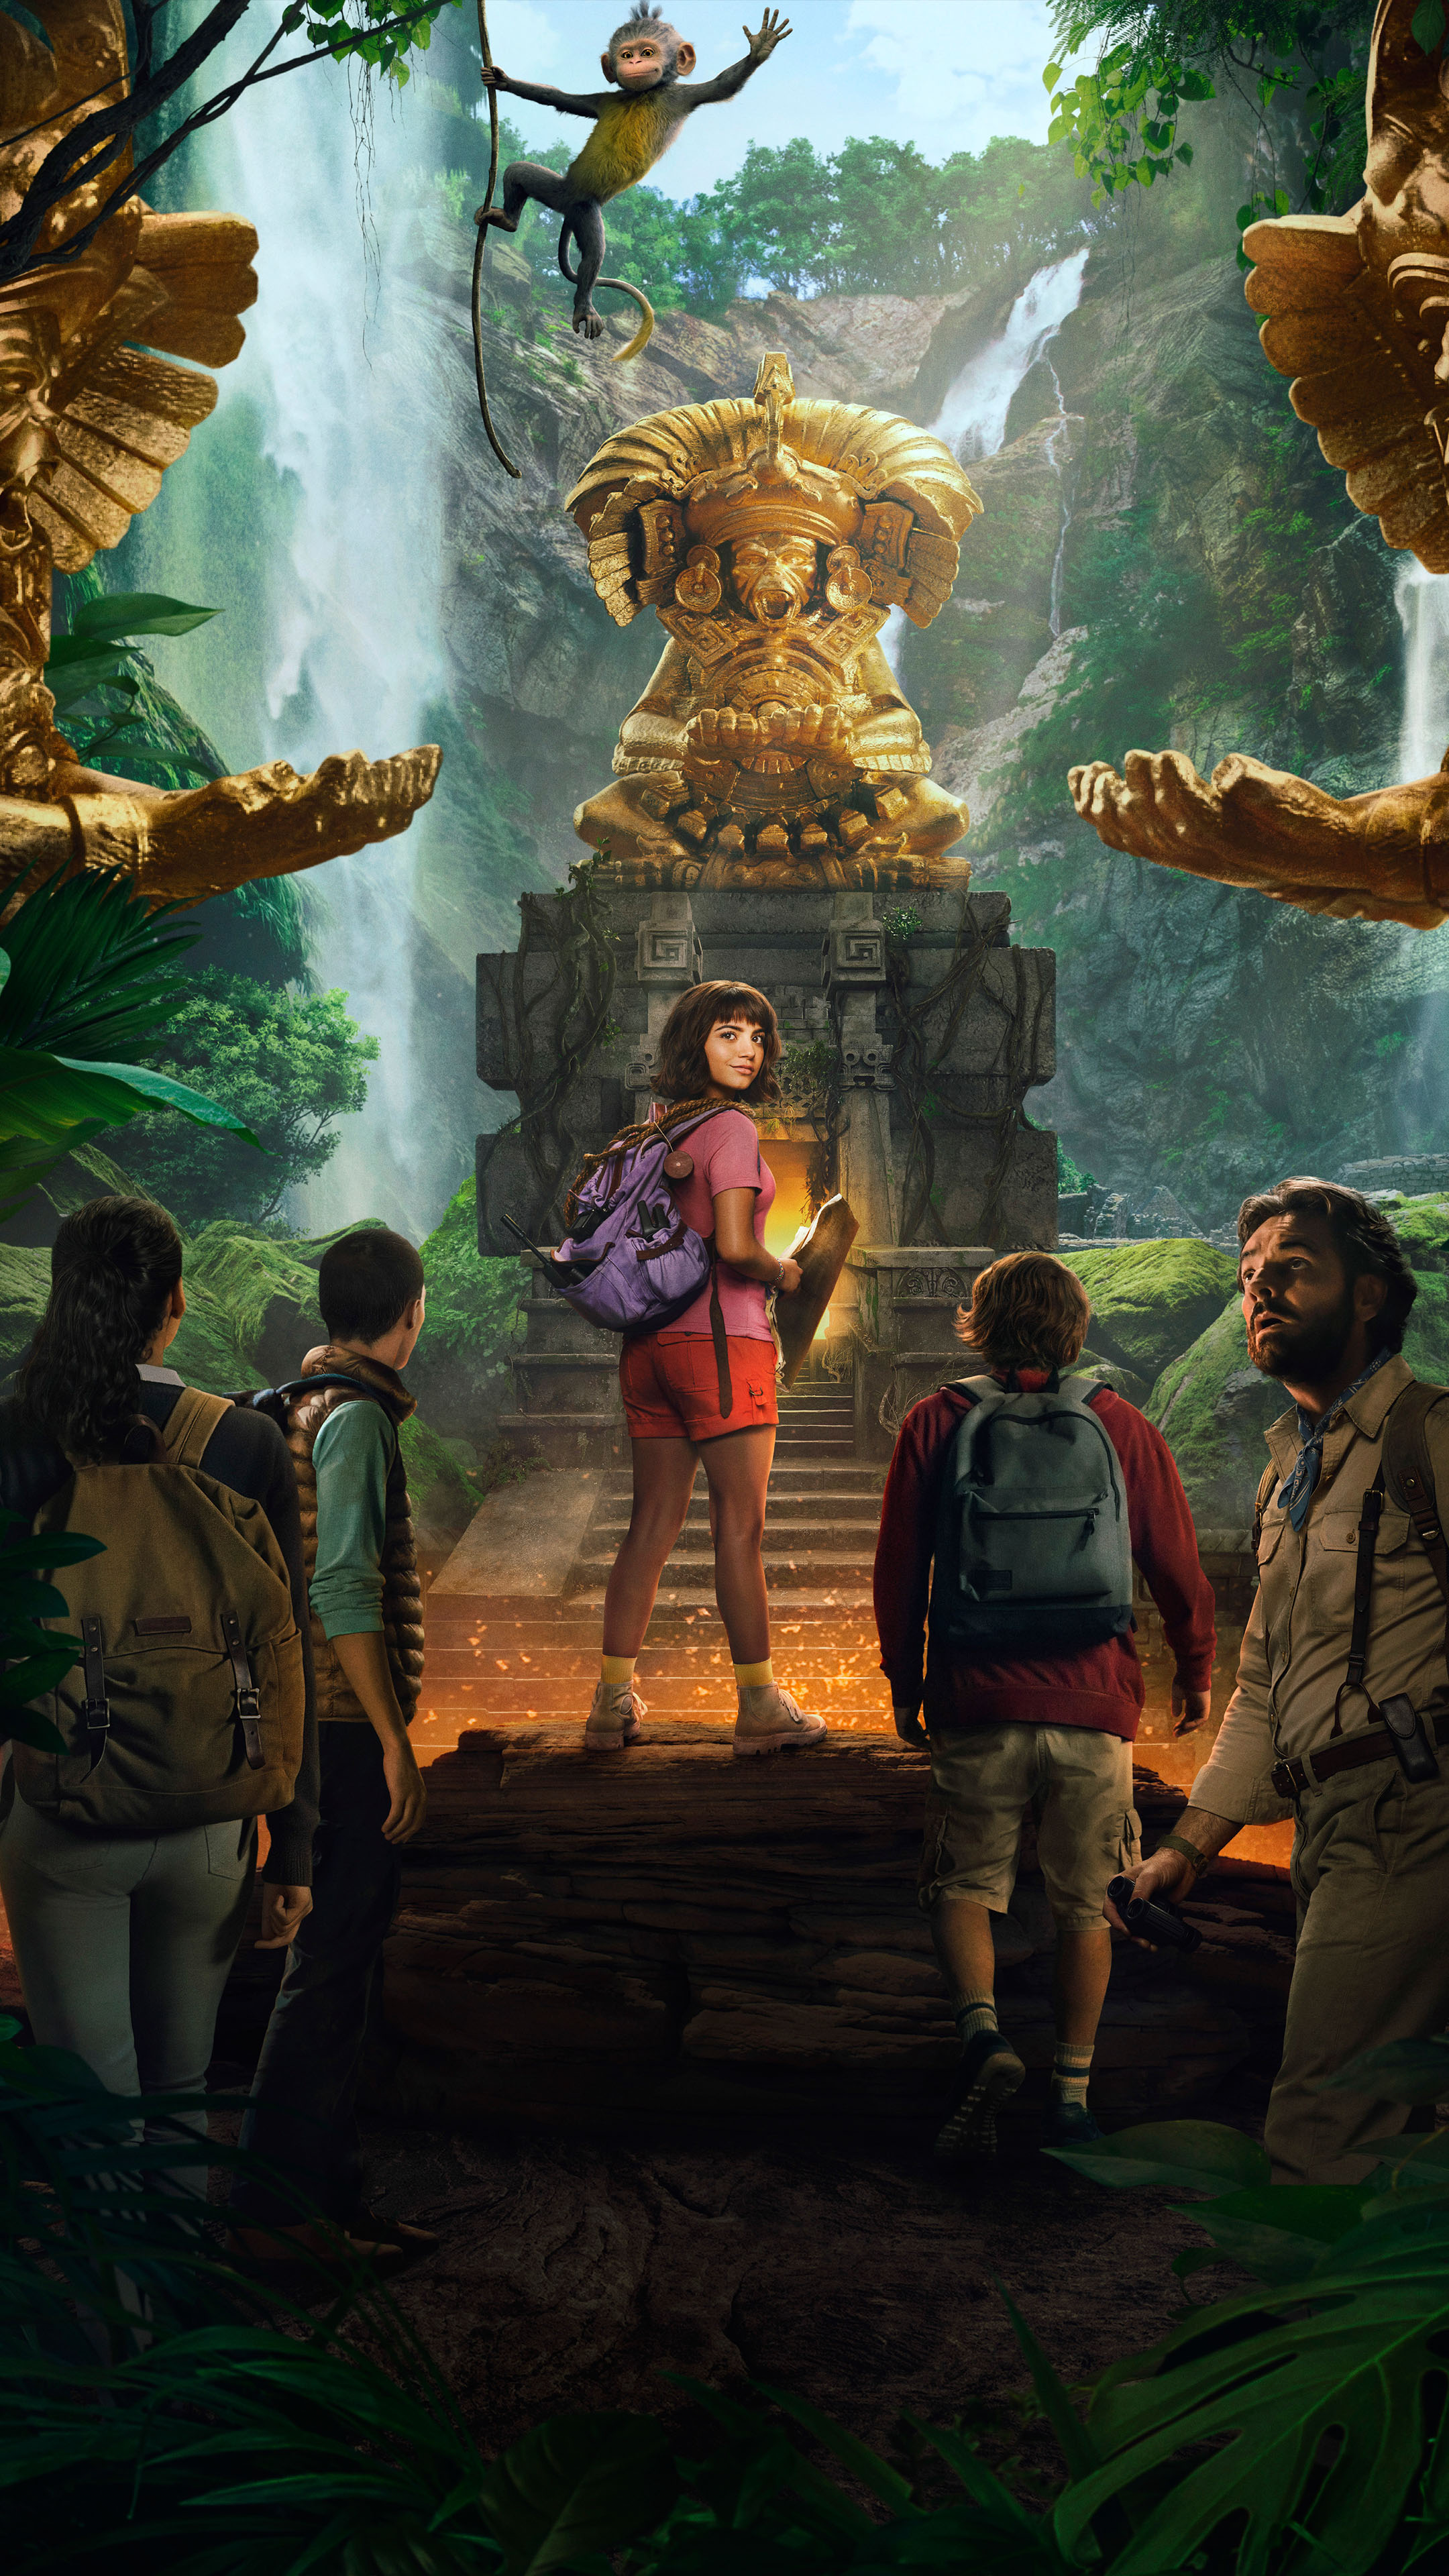 Download Best Quality Dora And The Lost City of Gold 2019 4K UHD 2160x3840